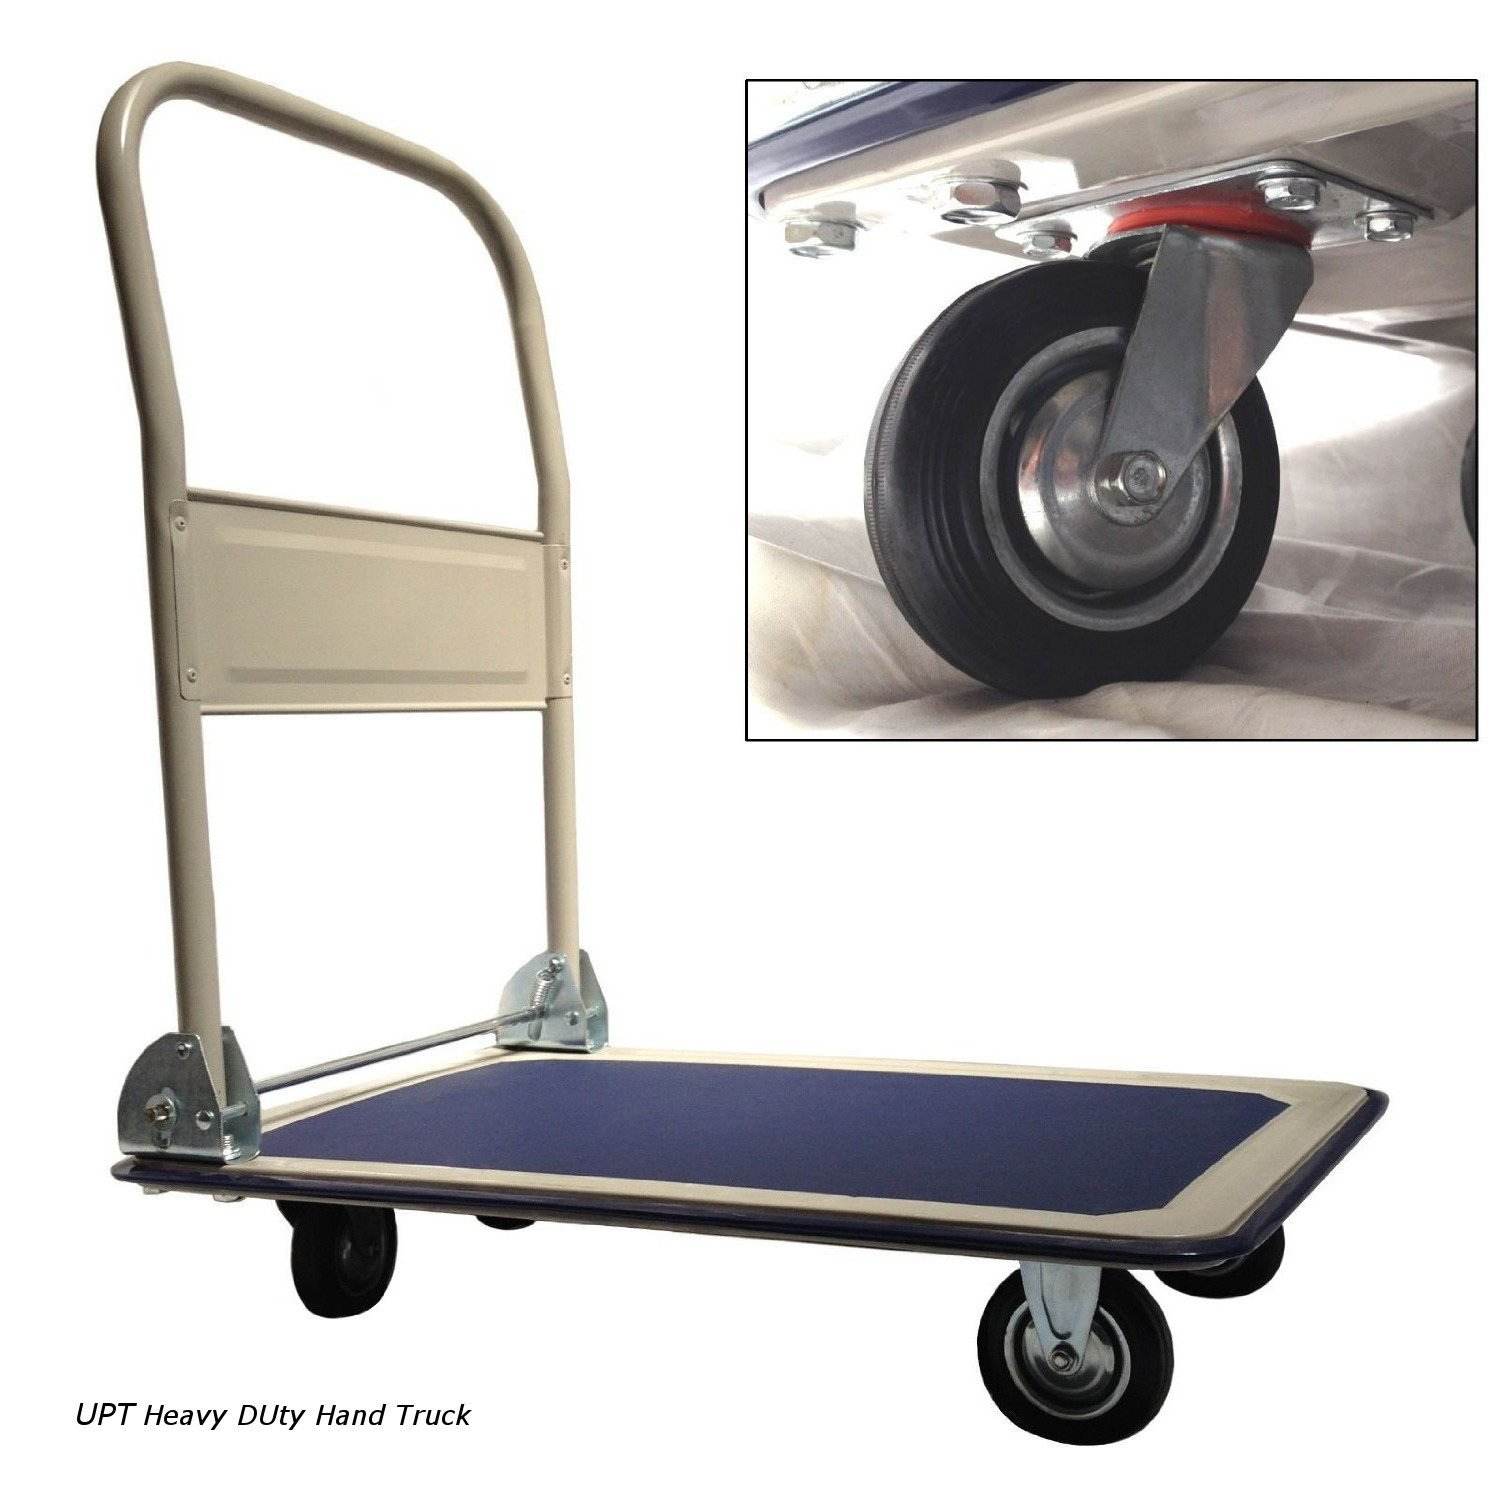 UPT Platform Truck Push Cart   Folding Collapsible Warehouse Retail Store  Shopping Dolly   330 Lbs